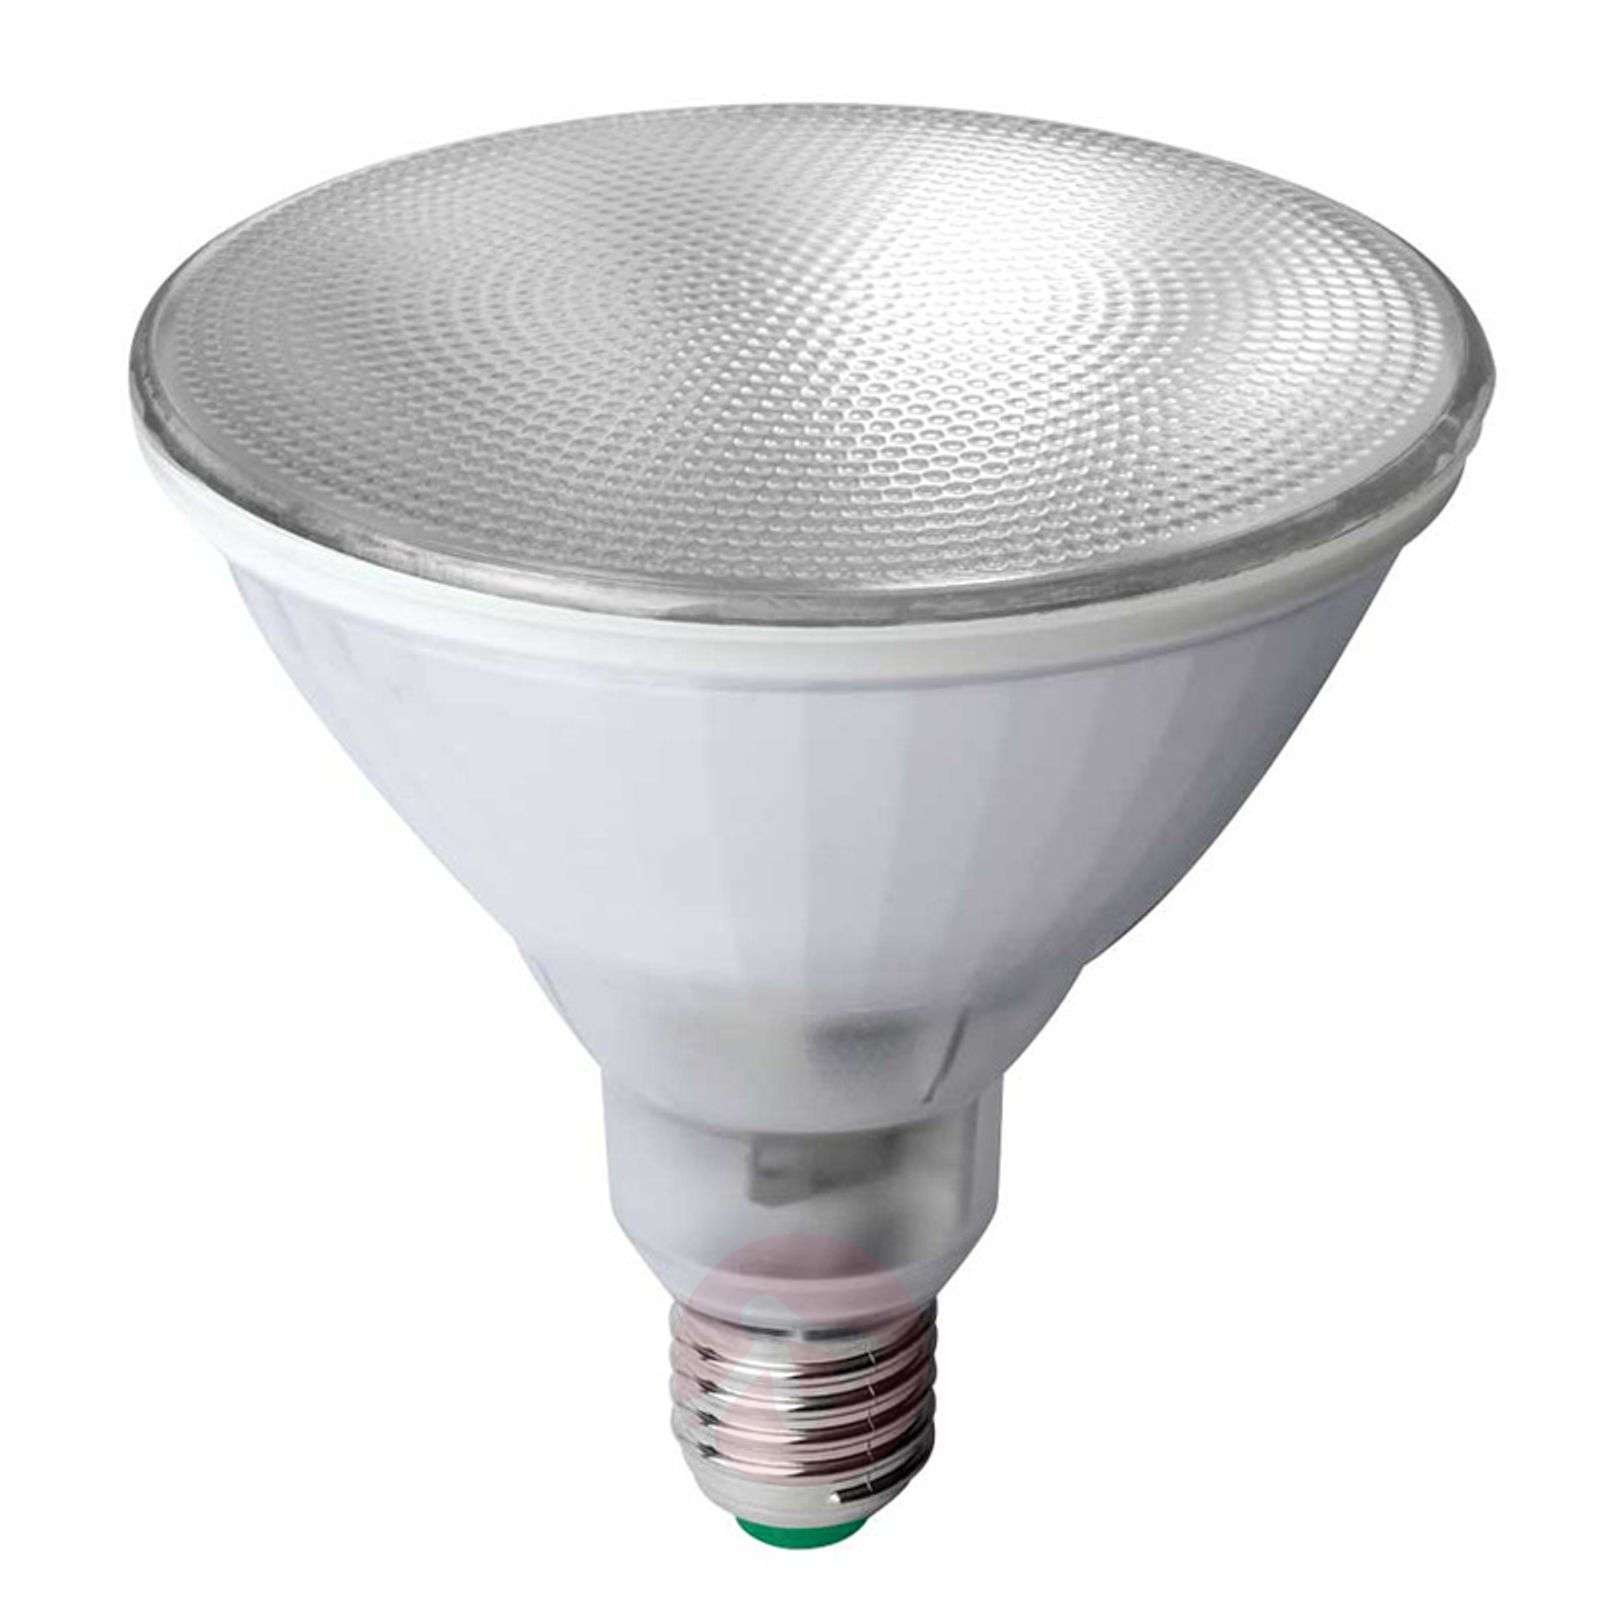 E27 15.5 W 828 LED reflector PAR38 35degree MEGAMAN-6530188-01